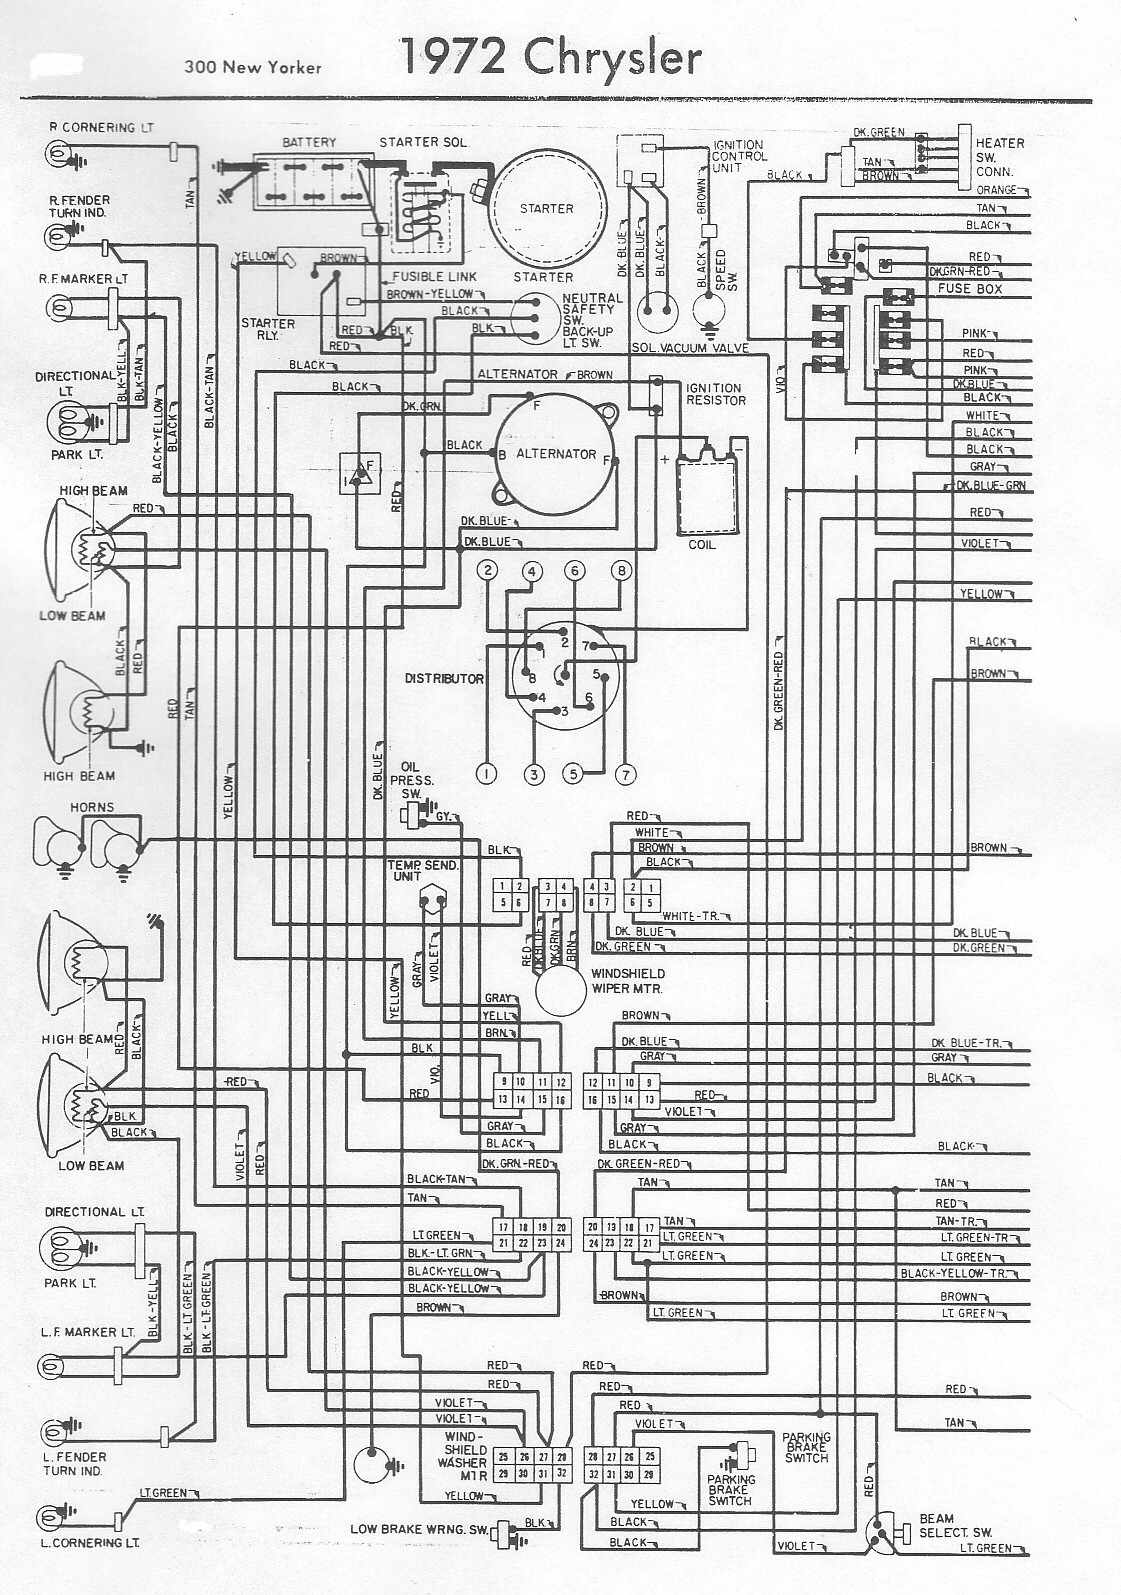 1965 chrysler newport wiring diagram chrysler - car manuals pdf & fault codes dtc